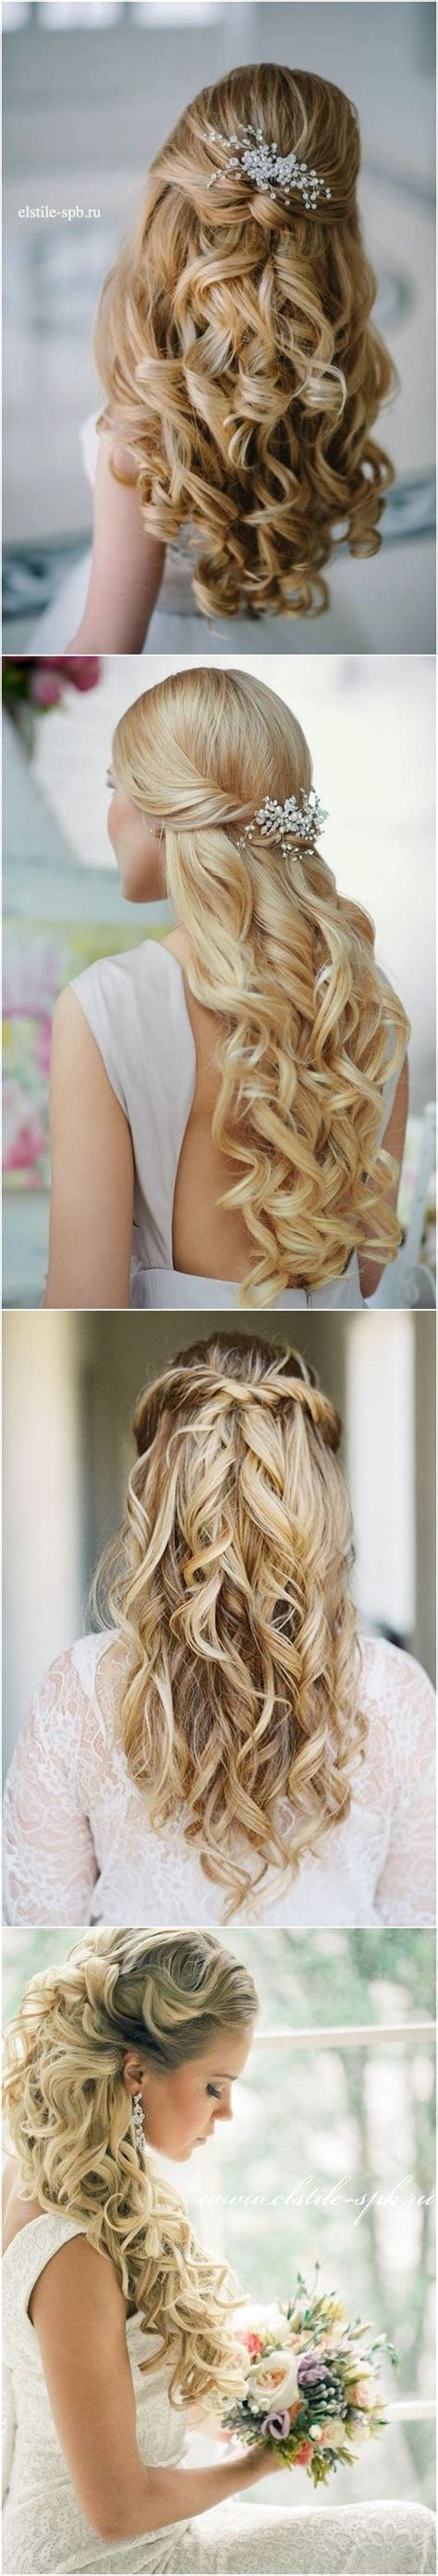 Bridal Hair Half Up Tutorial by Best Hair Style For 40 Stunning Half Up Half